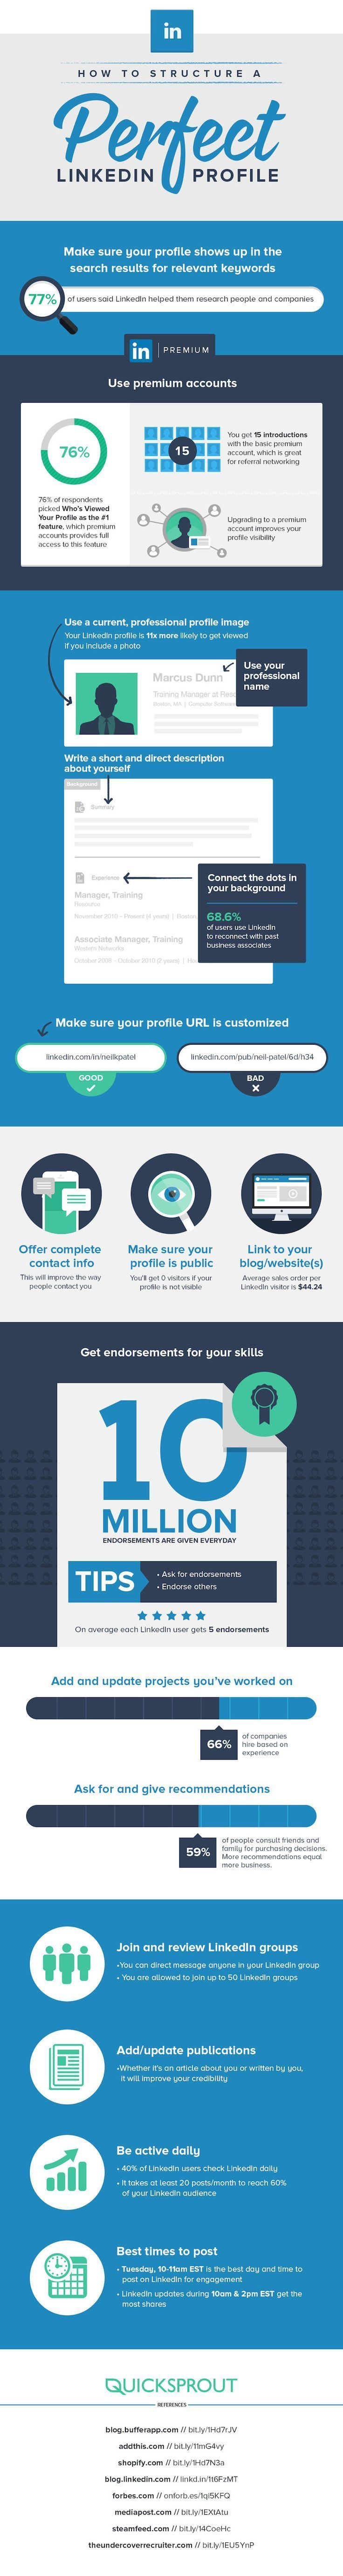 The Anatomy a Perfect LinkedIn Profile: Do you use LinkedIn for personal branding? Are you wondering how to structure a perfect LinkedIn profile? Then view the infographic above!